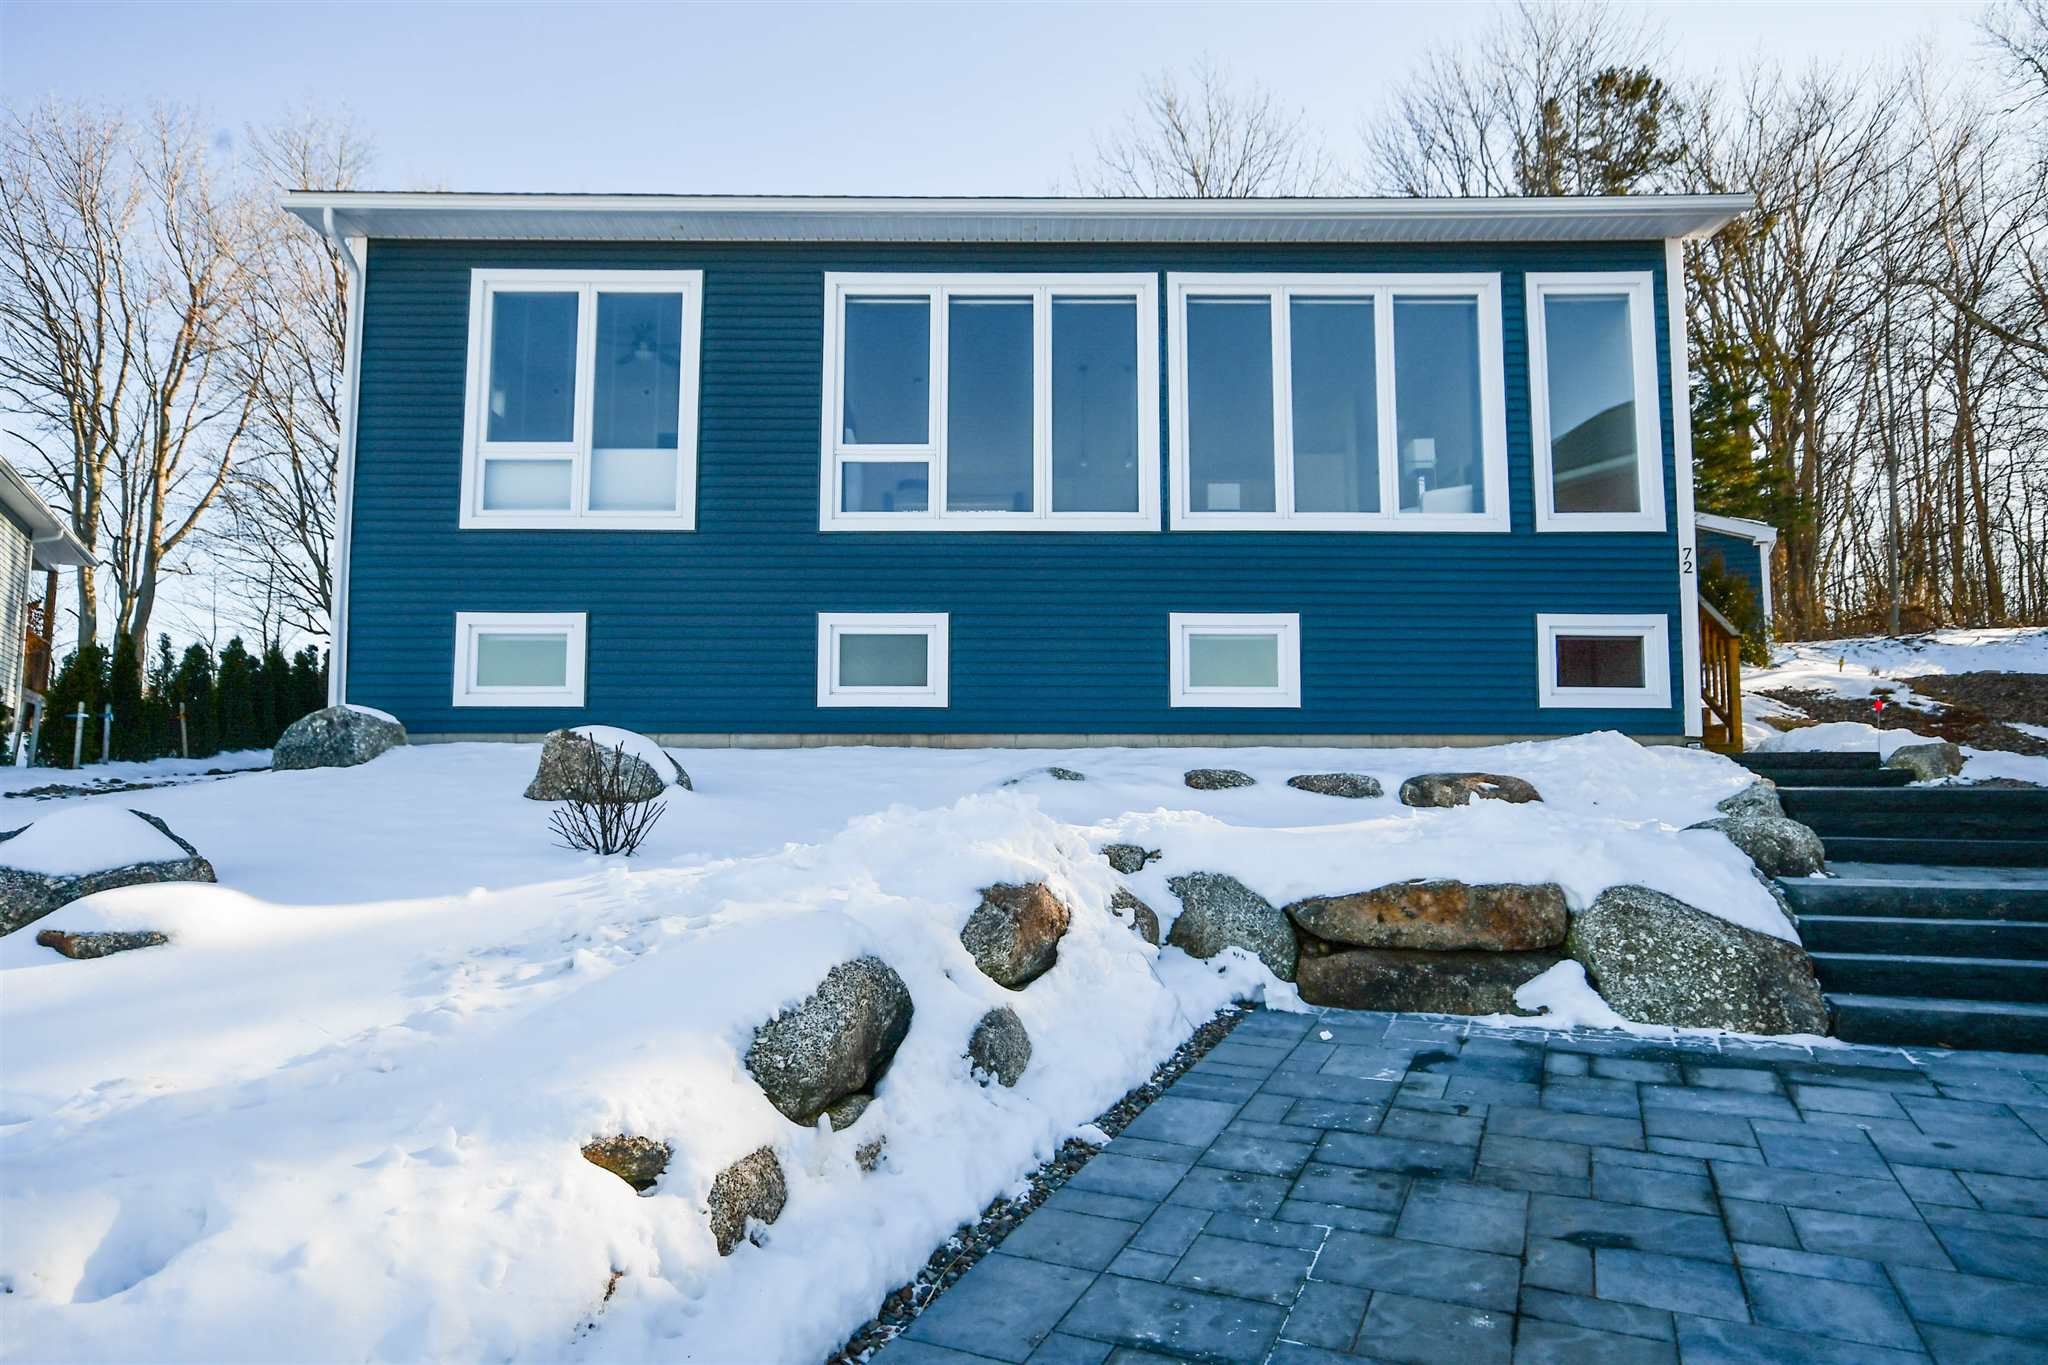 Main Photo: 72 Carriageway Court in Wolfville: 404-Kings County Residential for sale (Annapolis Valley)  : MLS®# 202100570